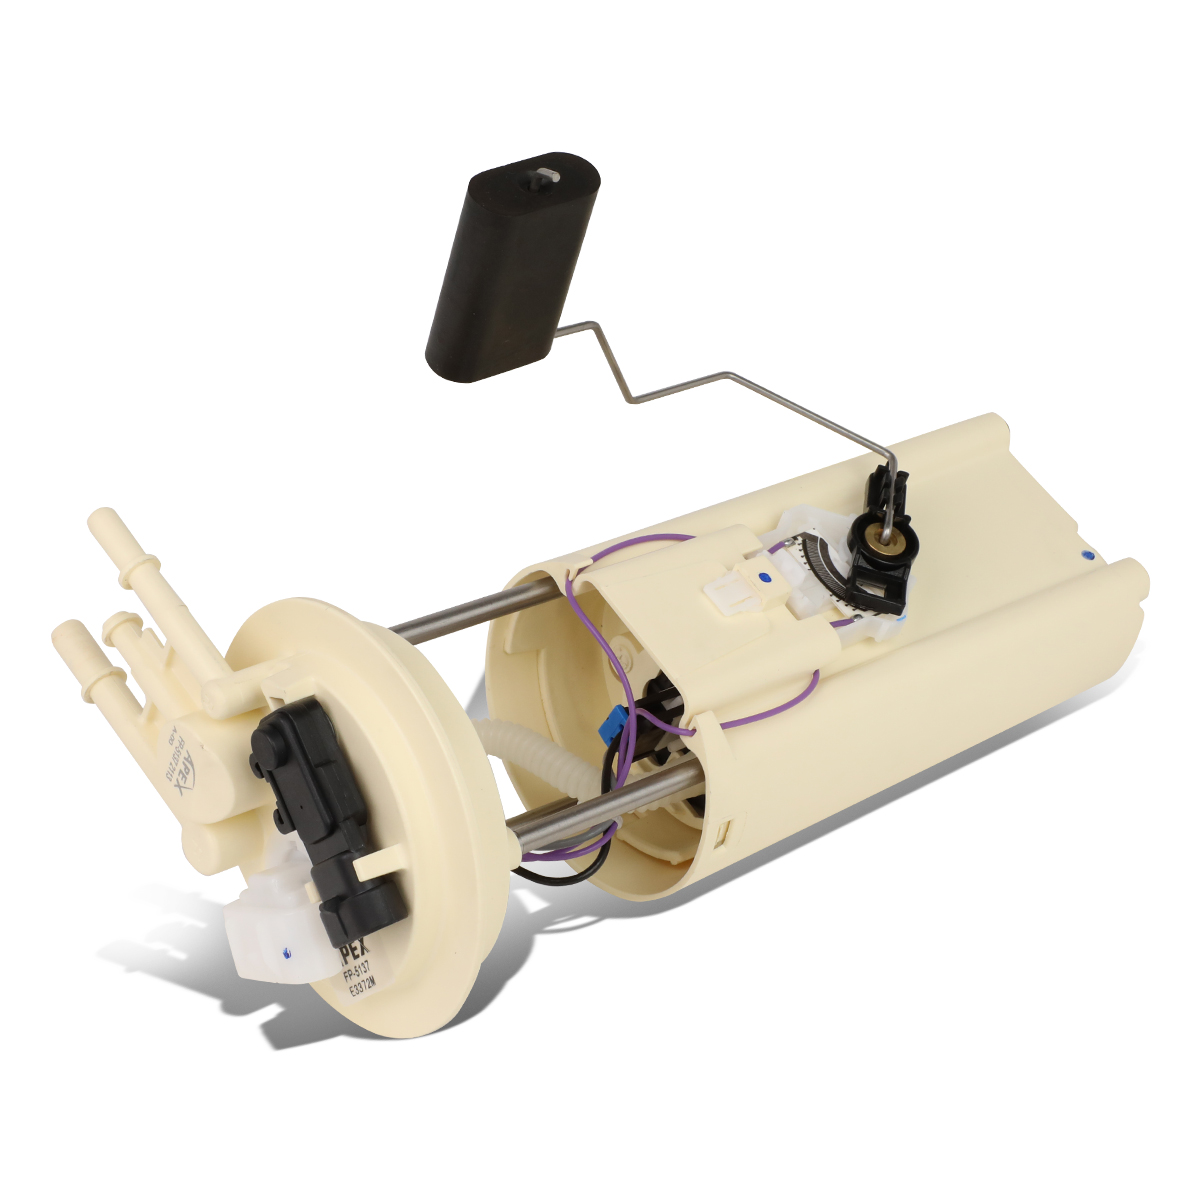 hight resolution of for 1998 to 2001 chevy venture oldsmobile pontiac montana 3 4l electric in tank fuel pump module kit 99 00 e3372m walmart com